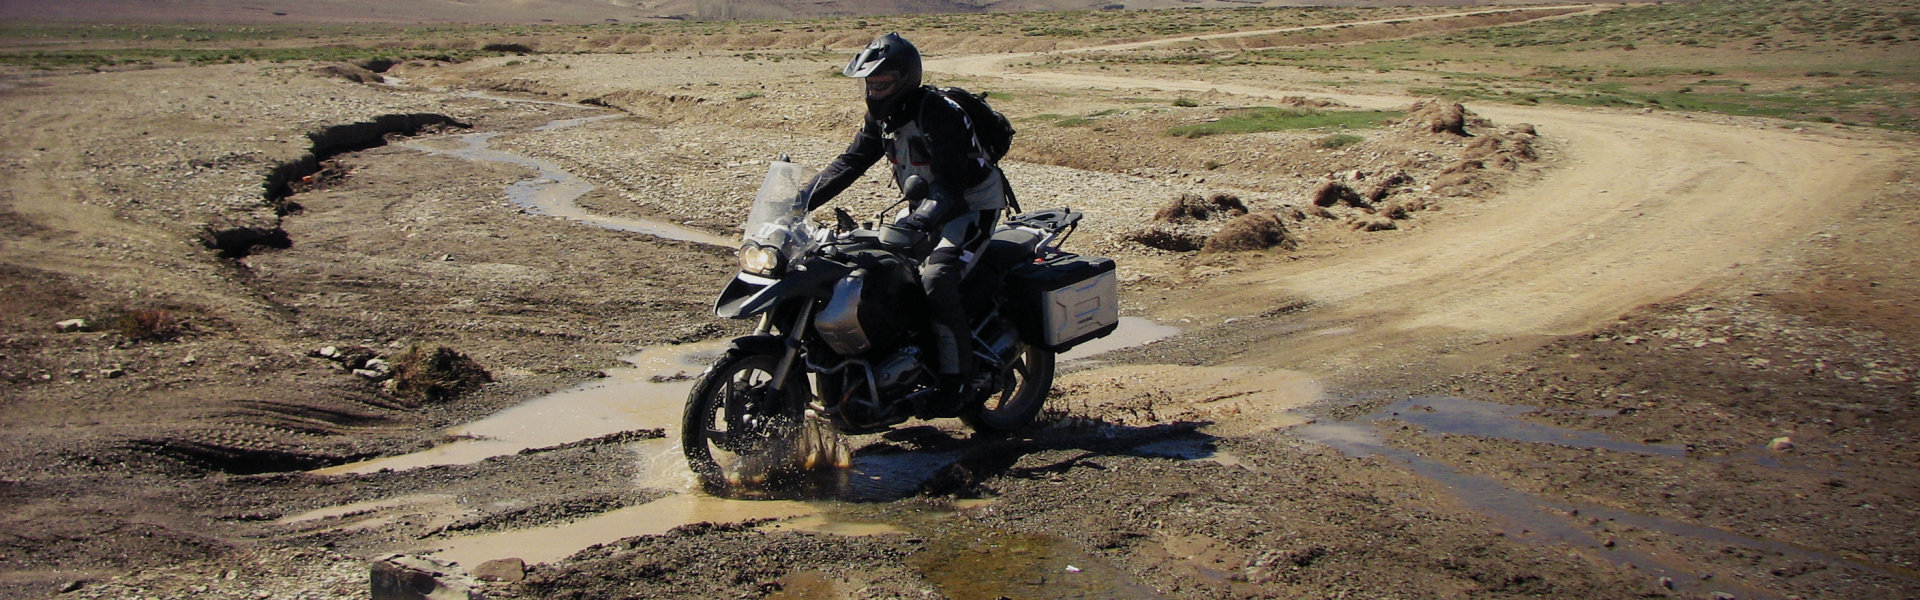 Motorcycle rider driving through mud